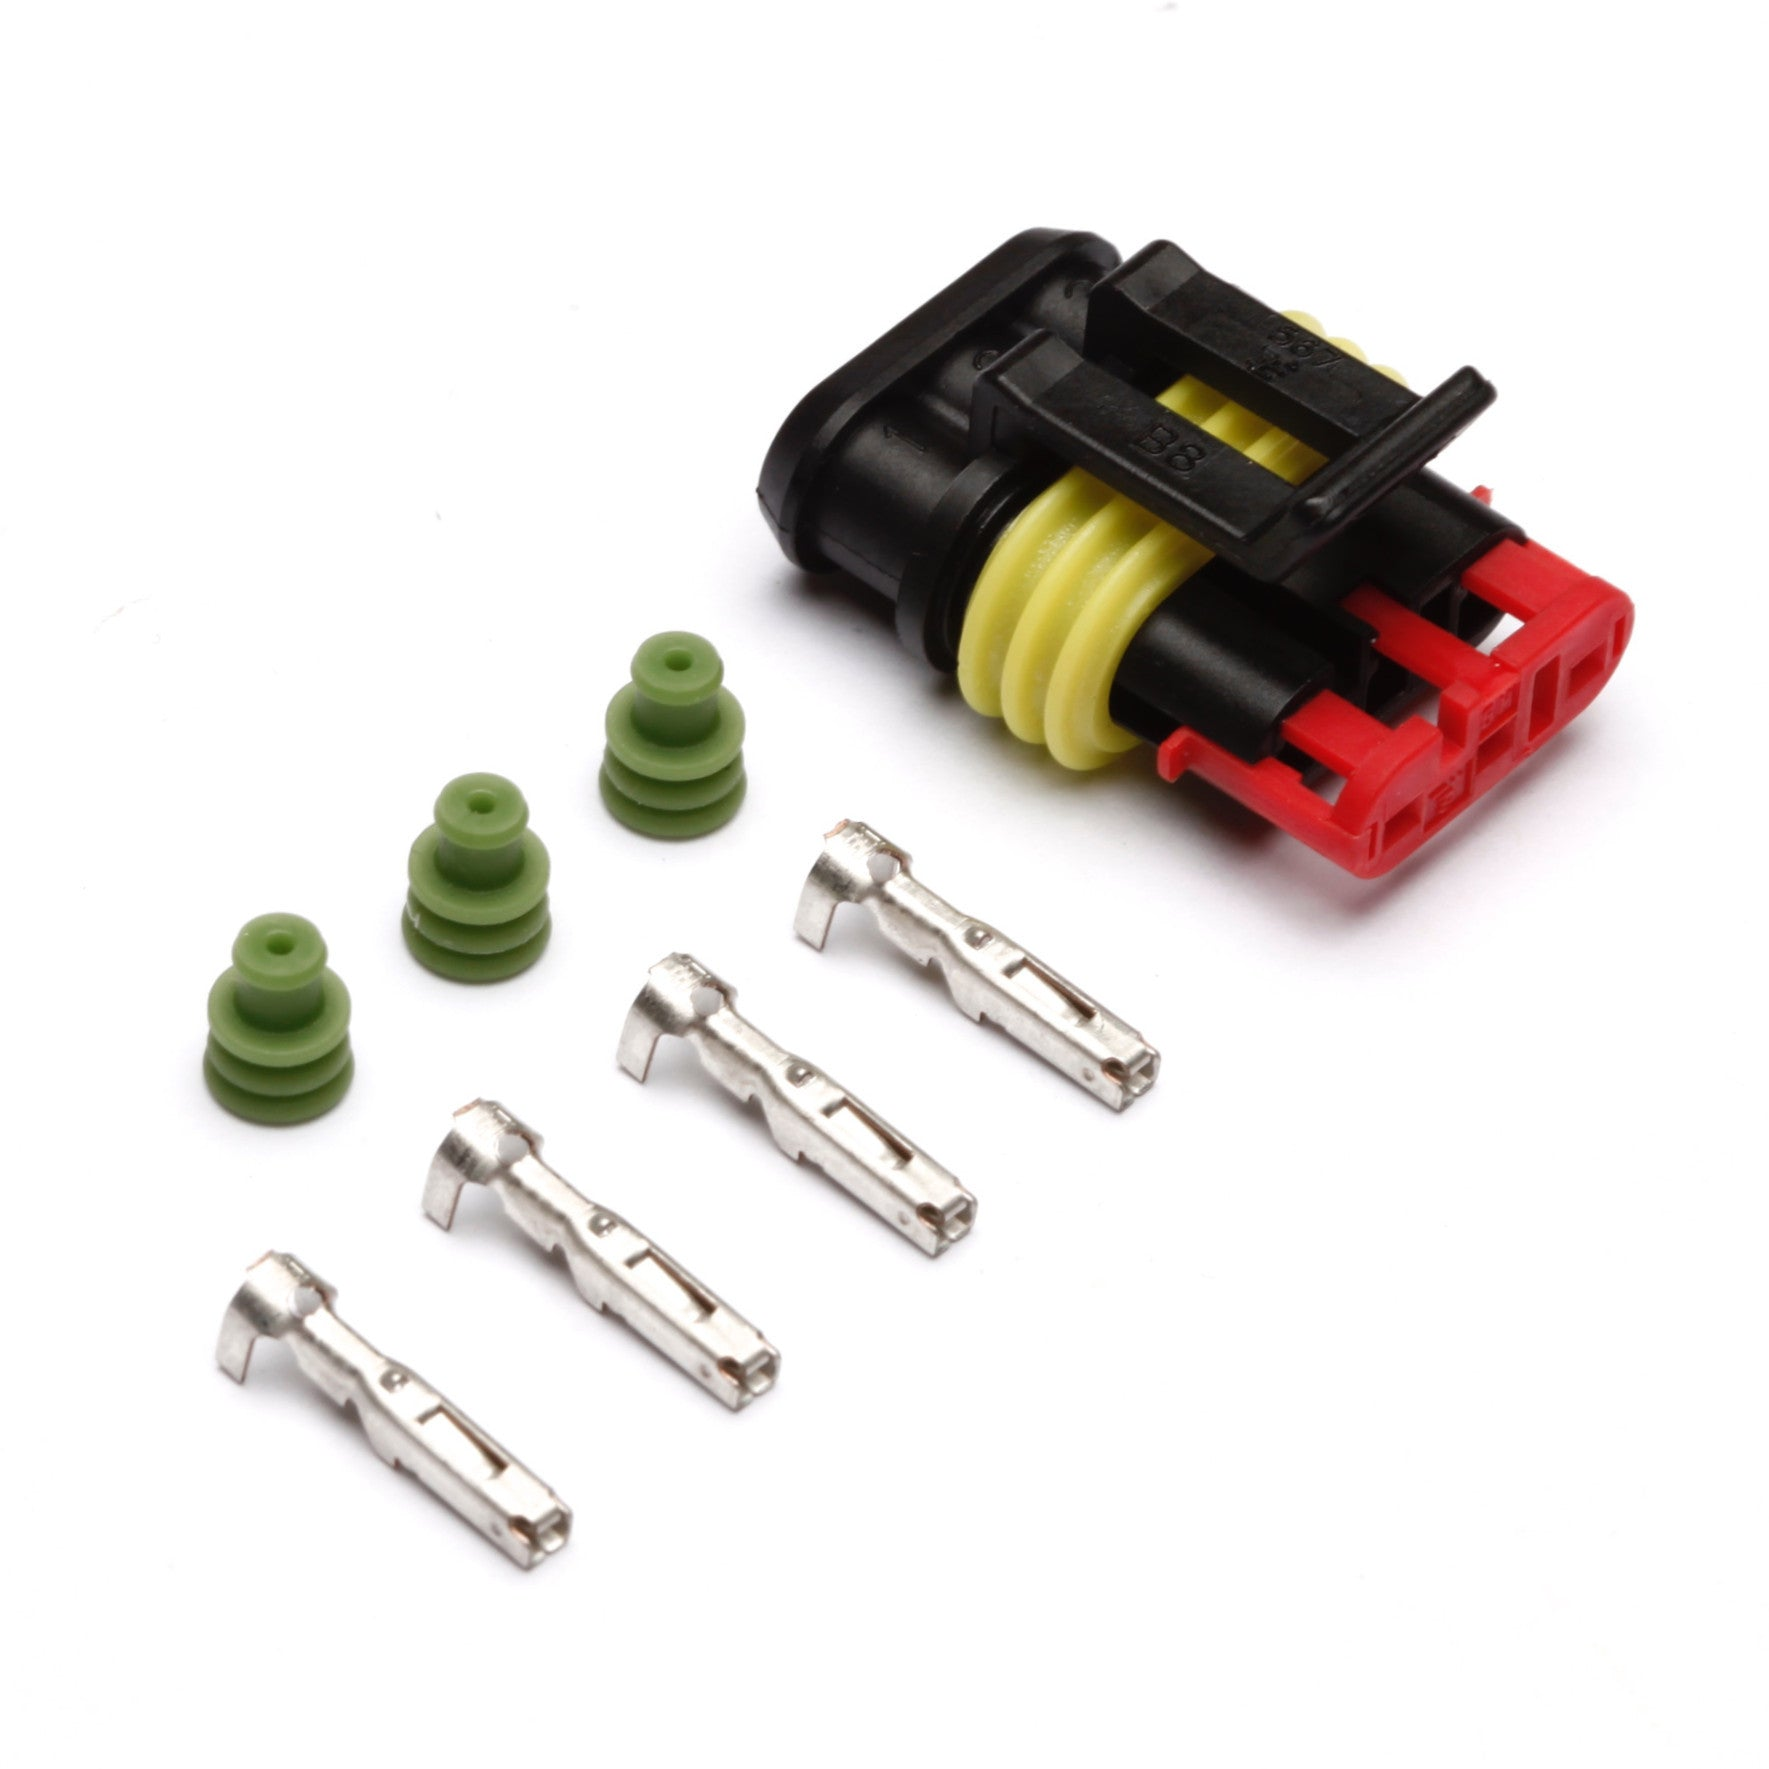 Connectors - Turbo Speed Connector Kit